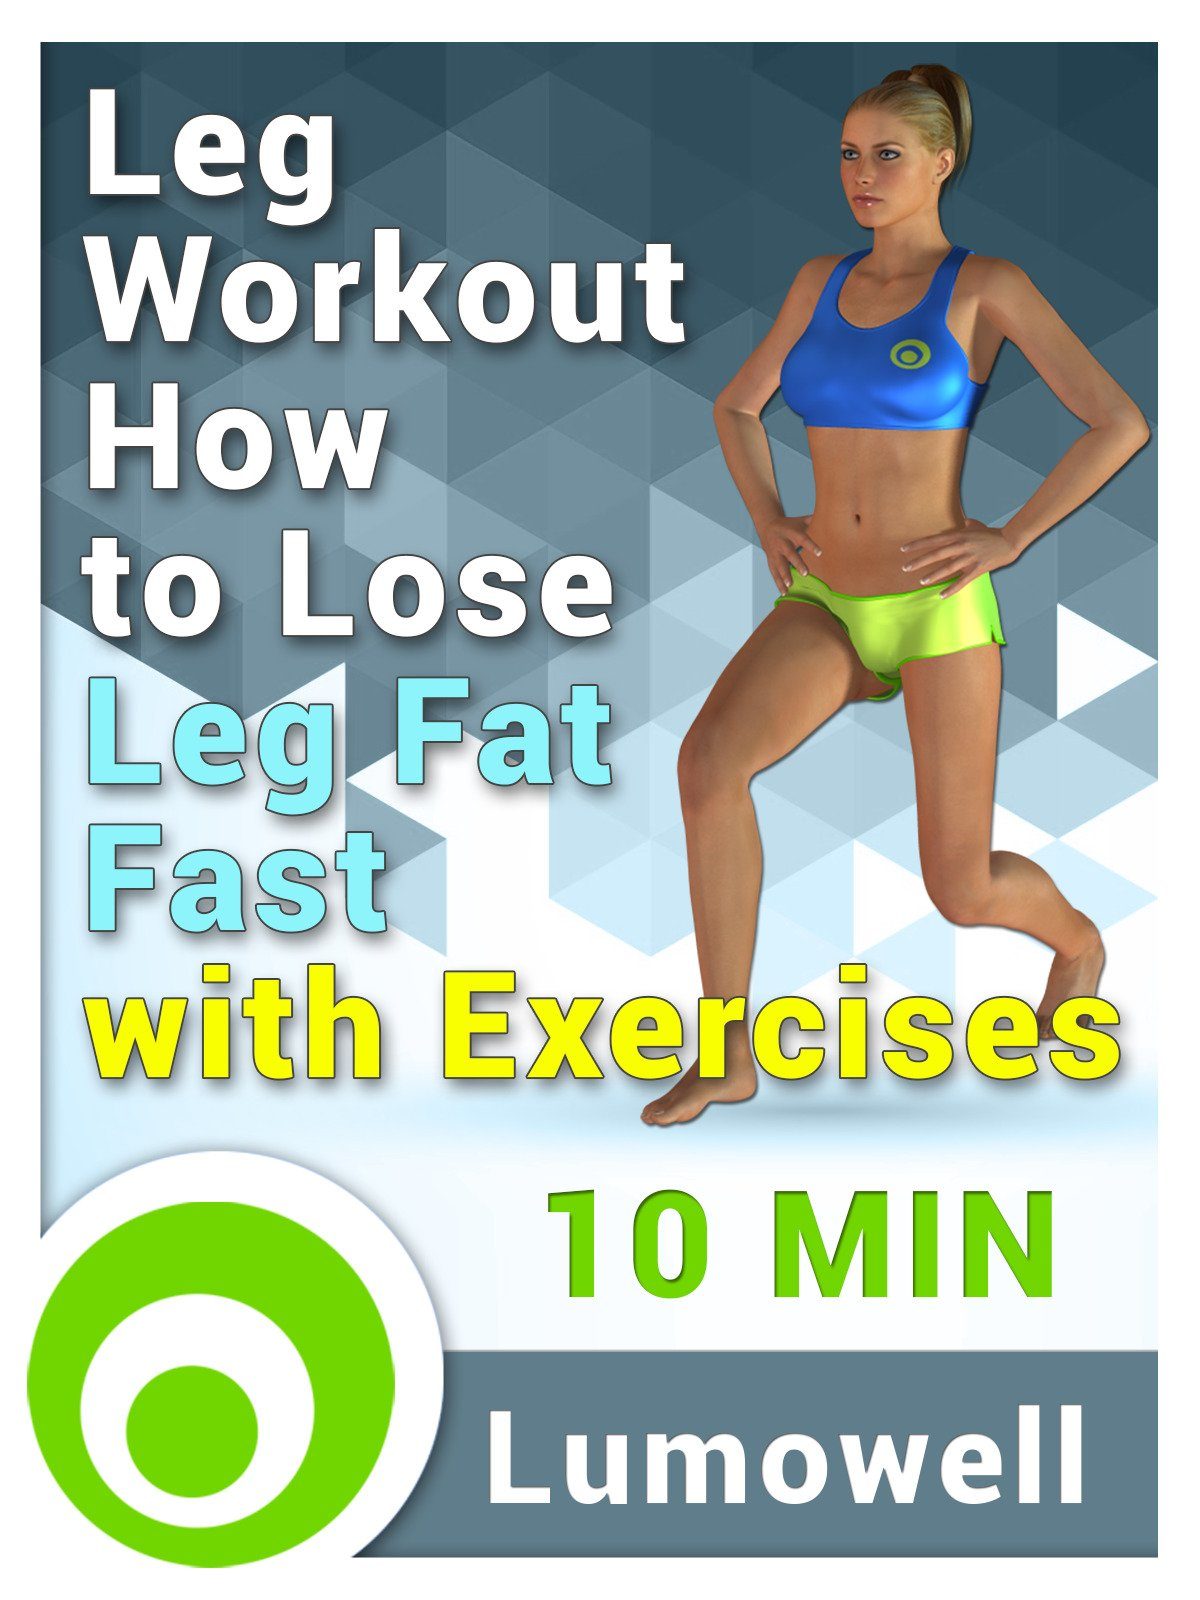 Leg Workout: How to Lose Leg Fat Fast with Exercises on Amazon Prime Instant Video UK